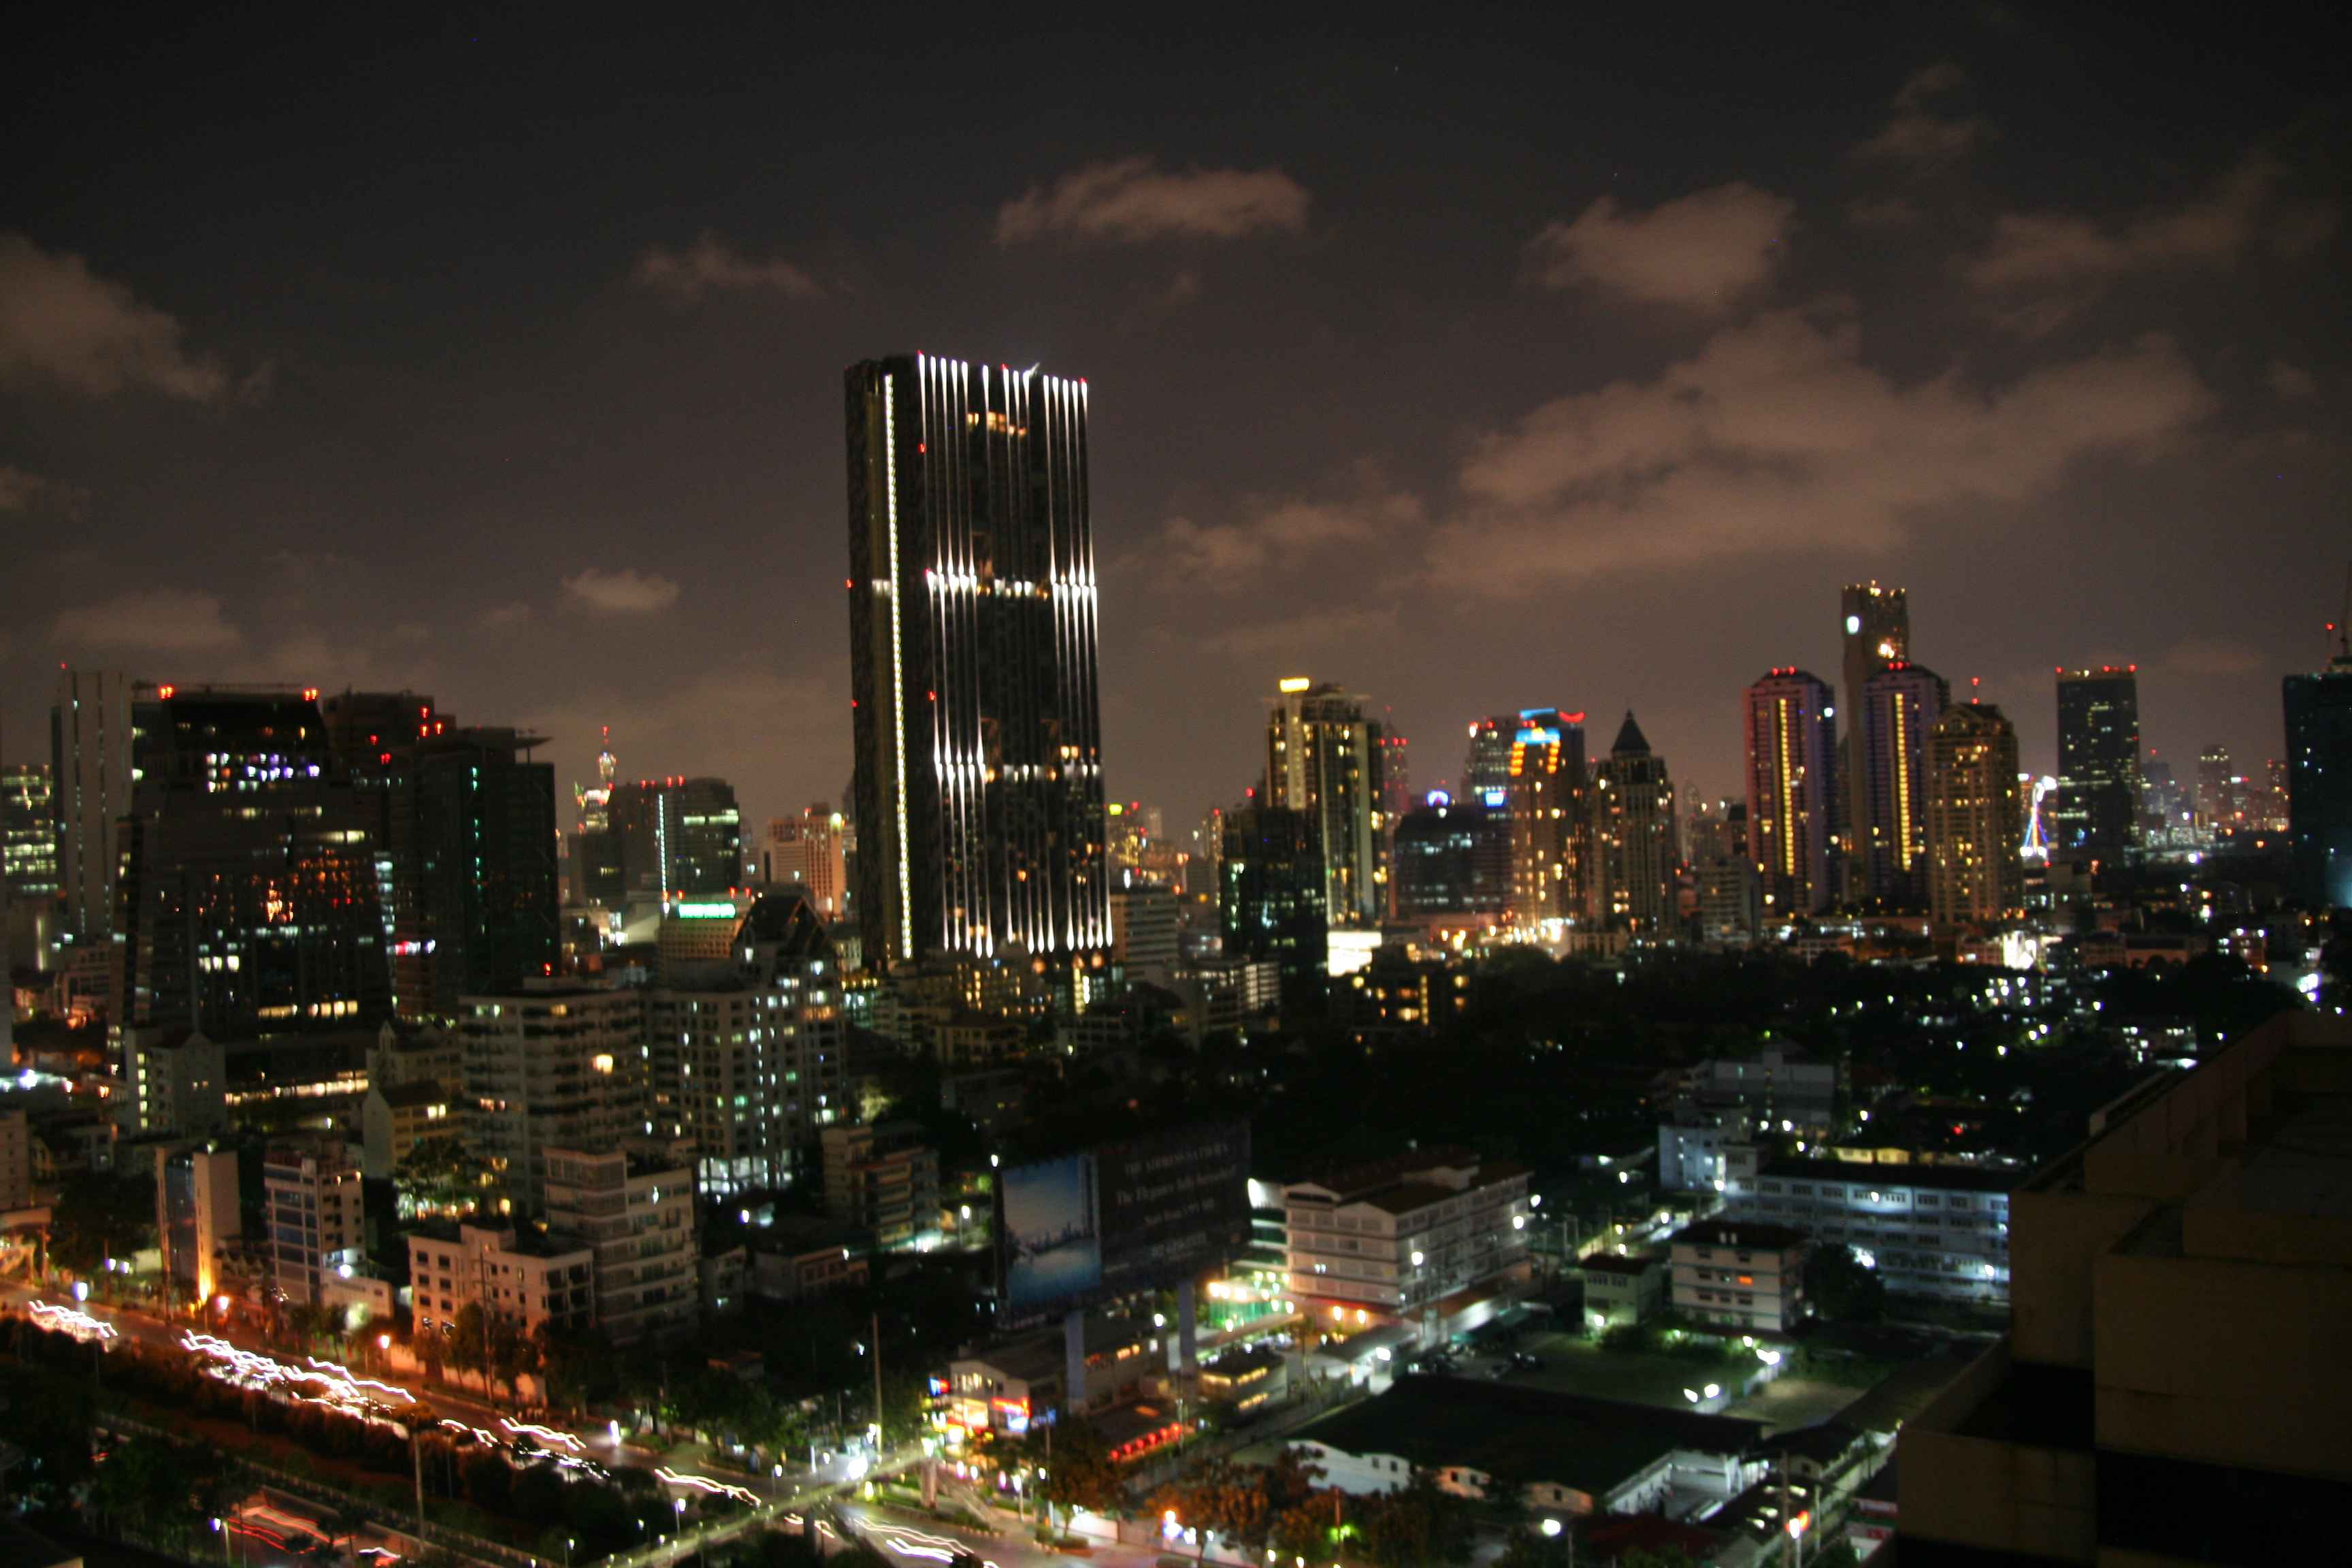 Sathorn Bangkok by night, By: Isaac Olson